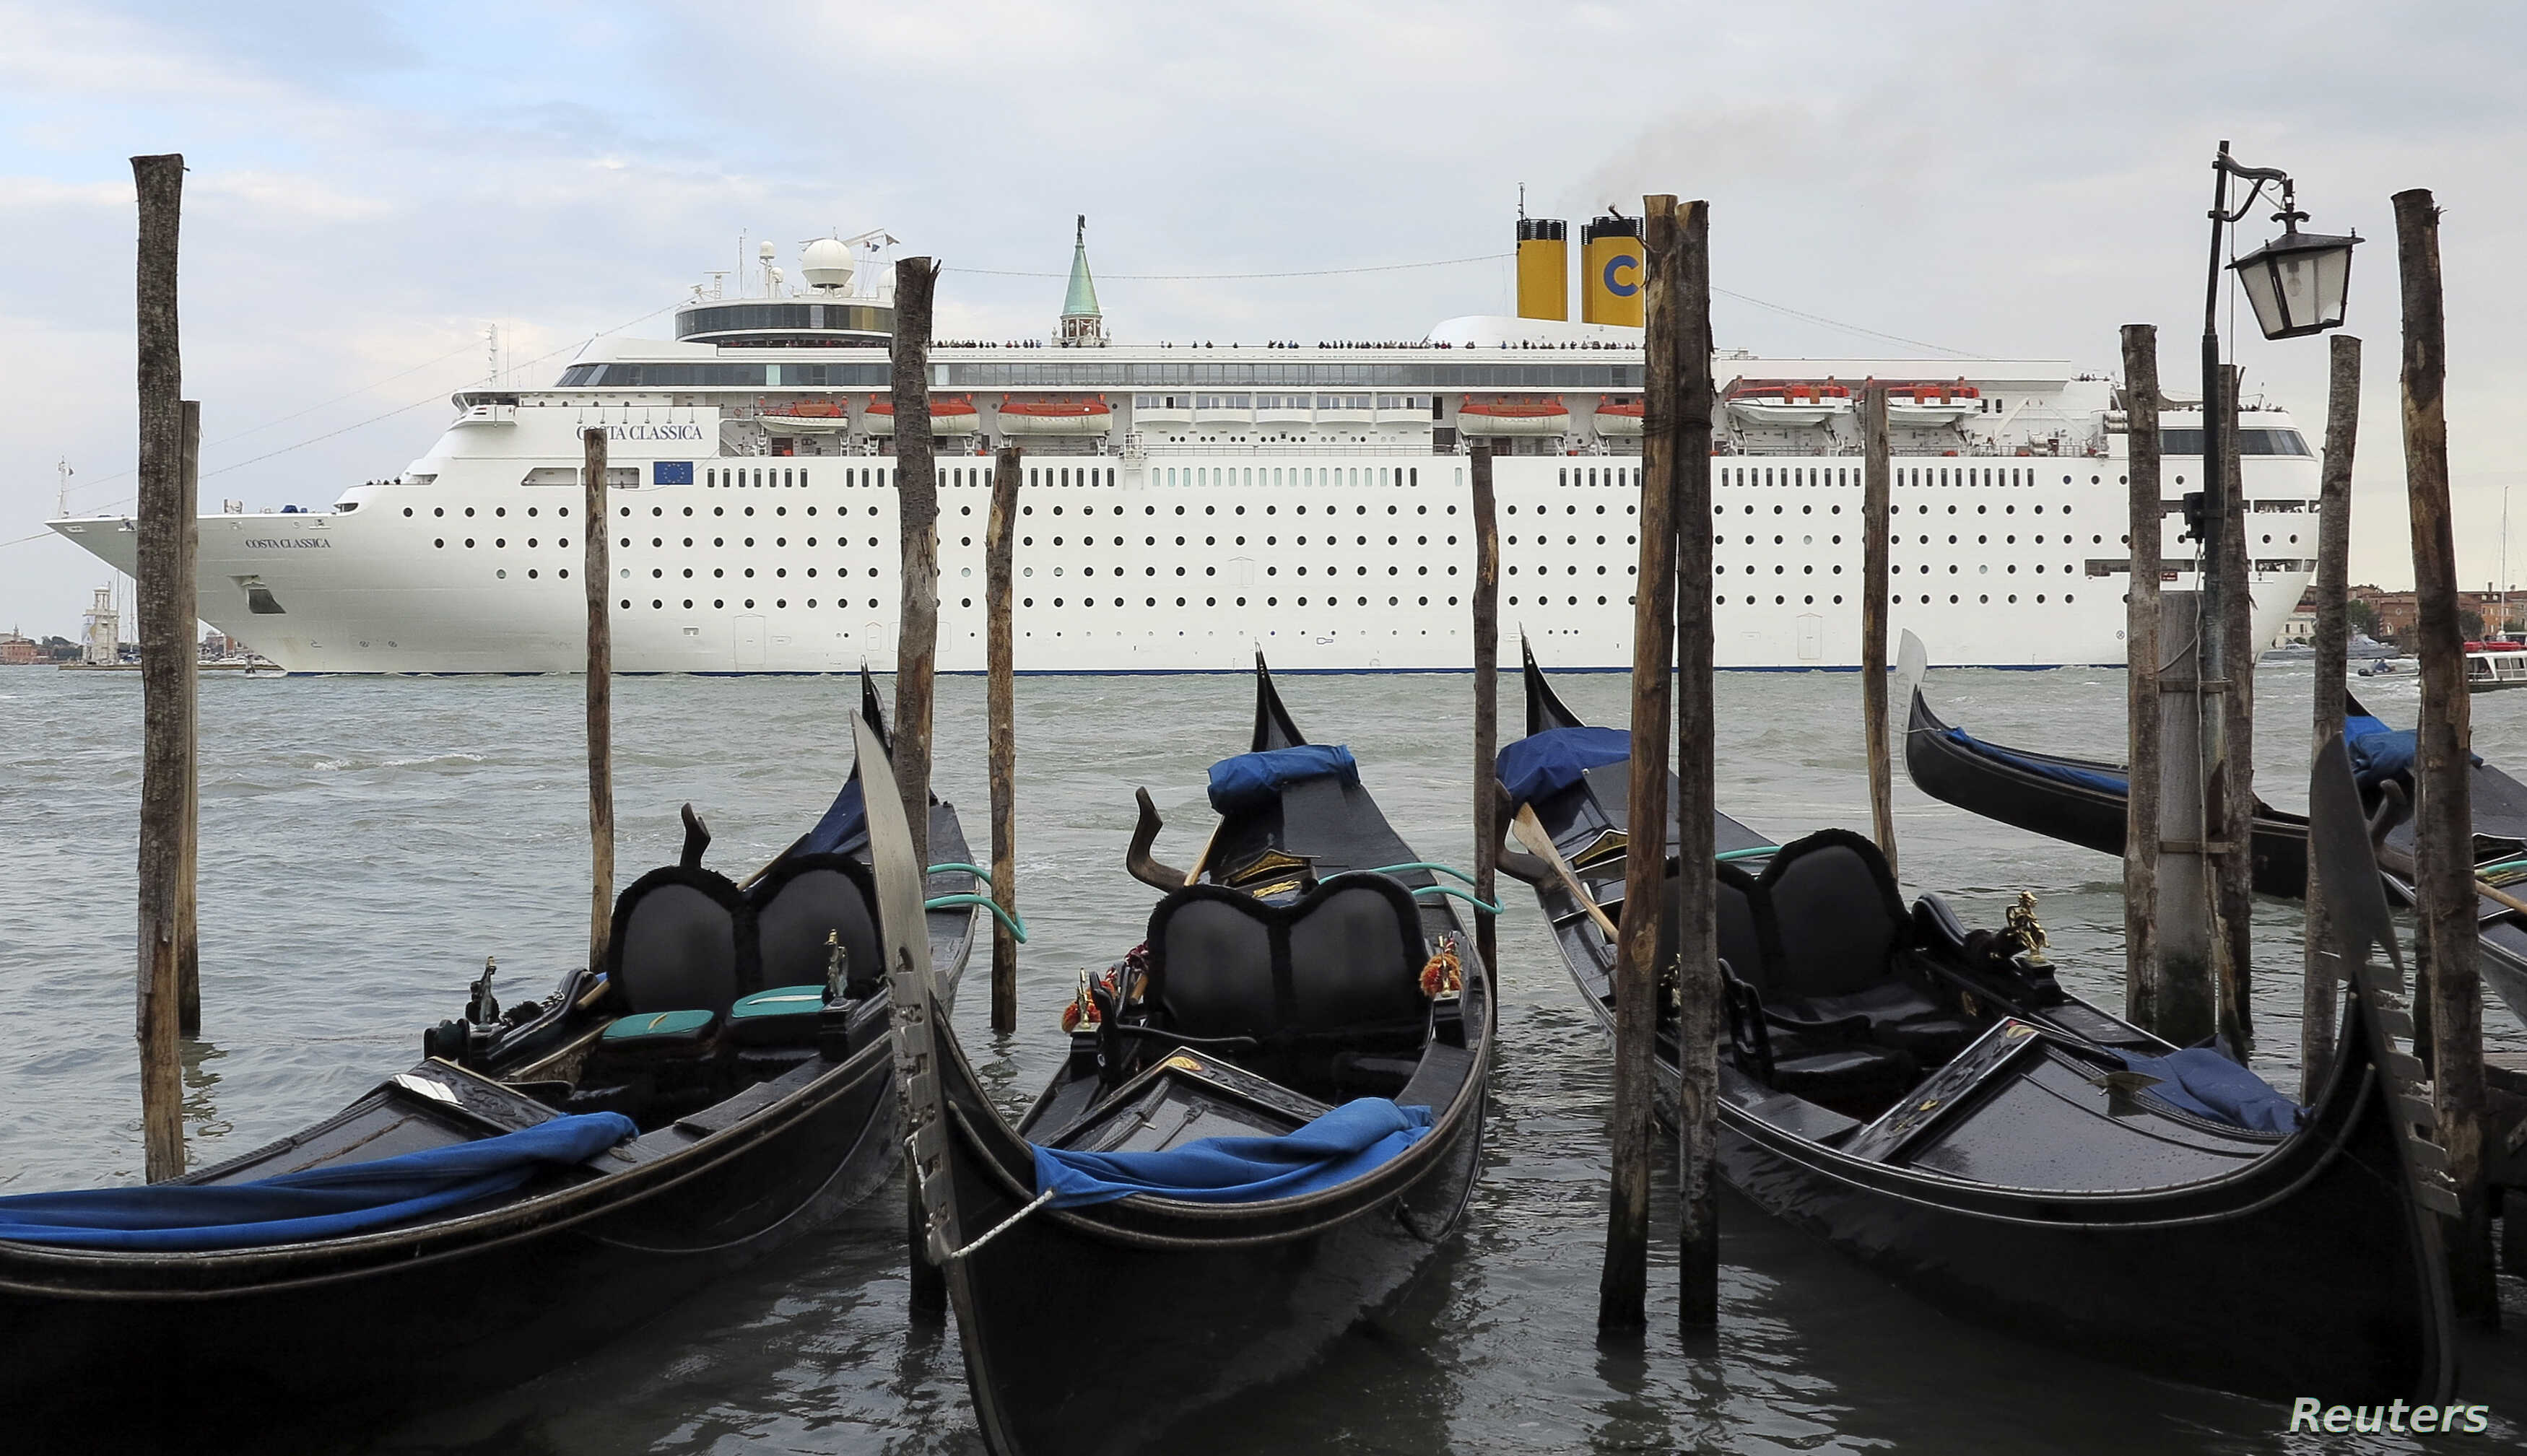 FILE - The Costa Classica cruise ship is seen in the Venice lagoon, May 18, 2012.